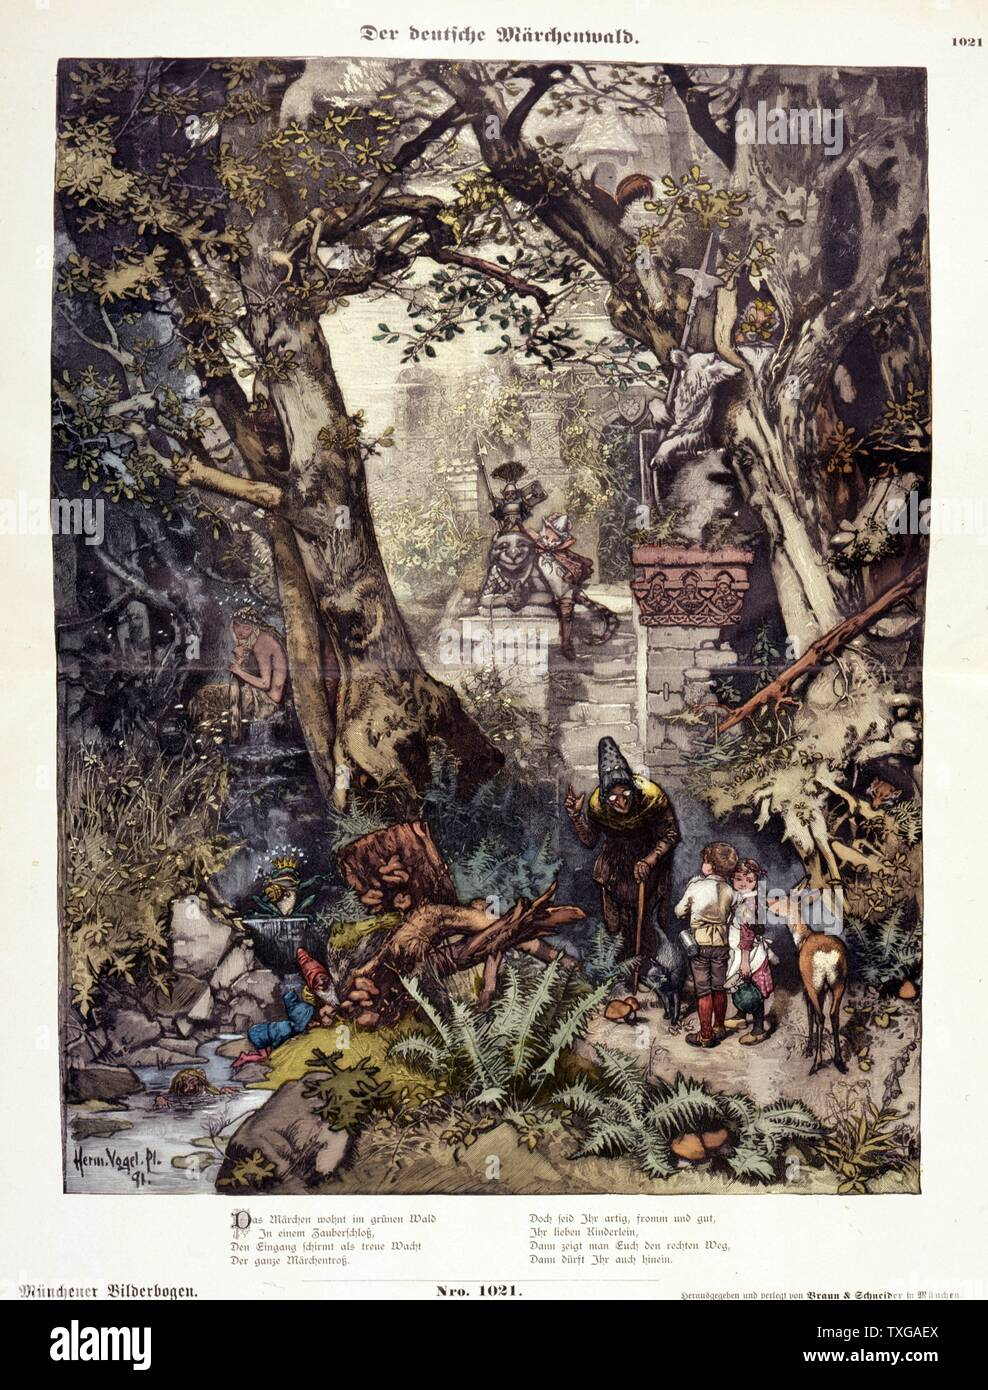 Illustration shows characters from German fairy tales, including Hansel and Gretel, Snow White and the Seven Dwarfs, and Puss in Boots, in a forest. By Hermann Vogel. - Stock Image